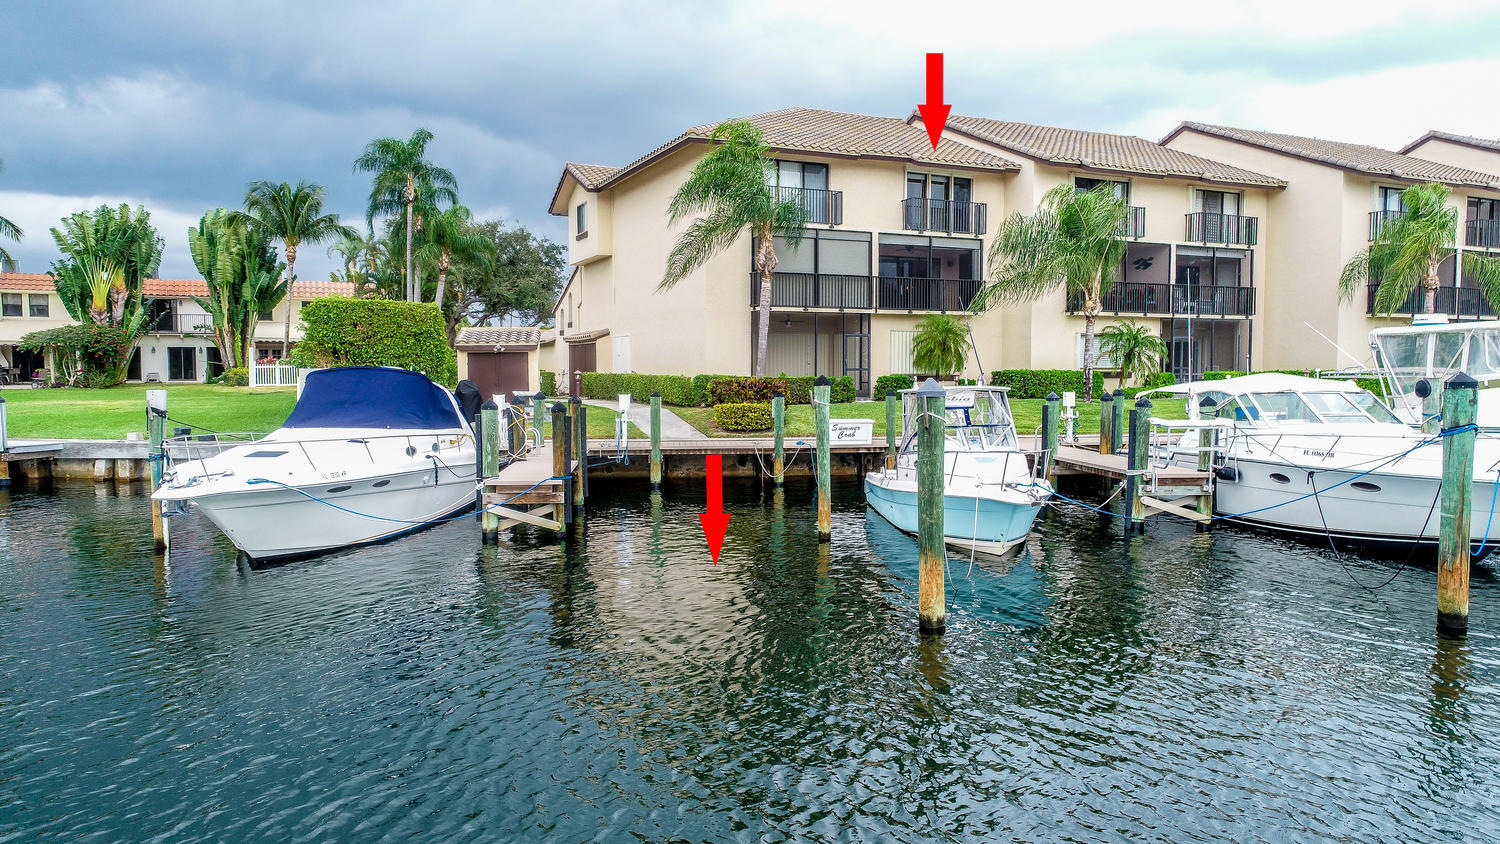 210 Captains Walk 718  Delray Beach, FL 33483